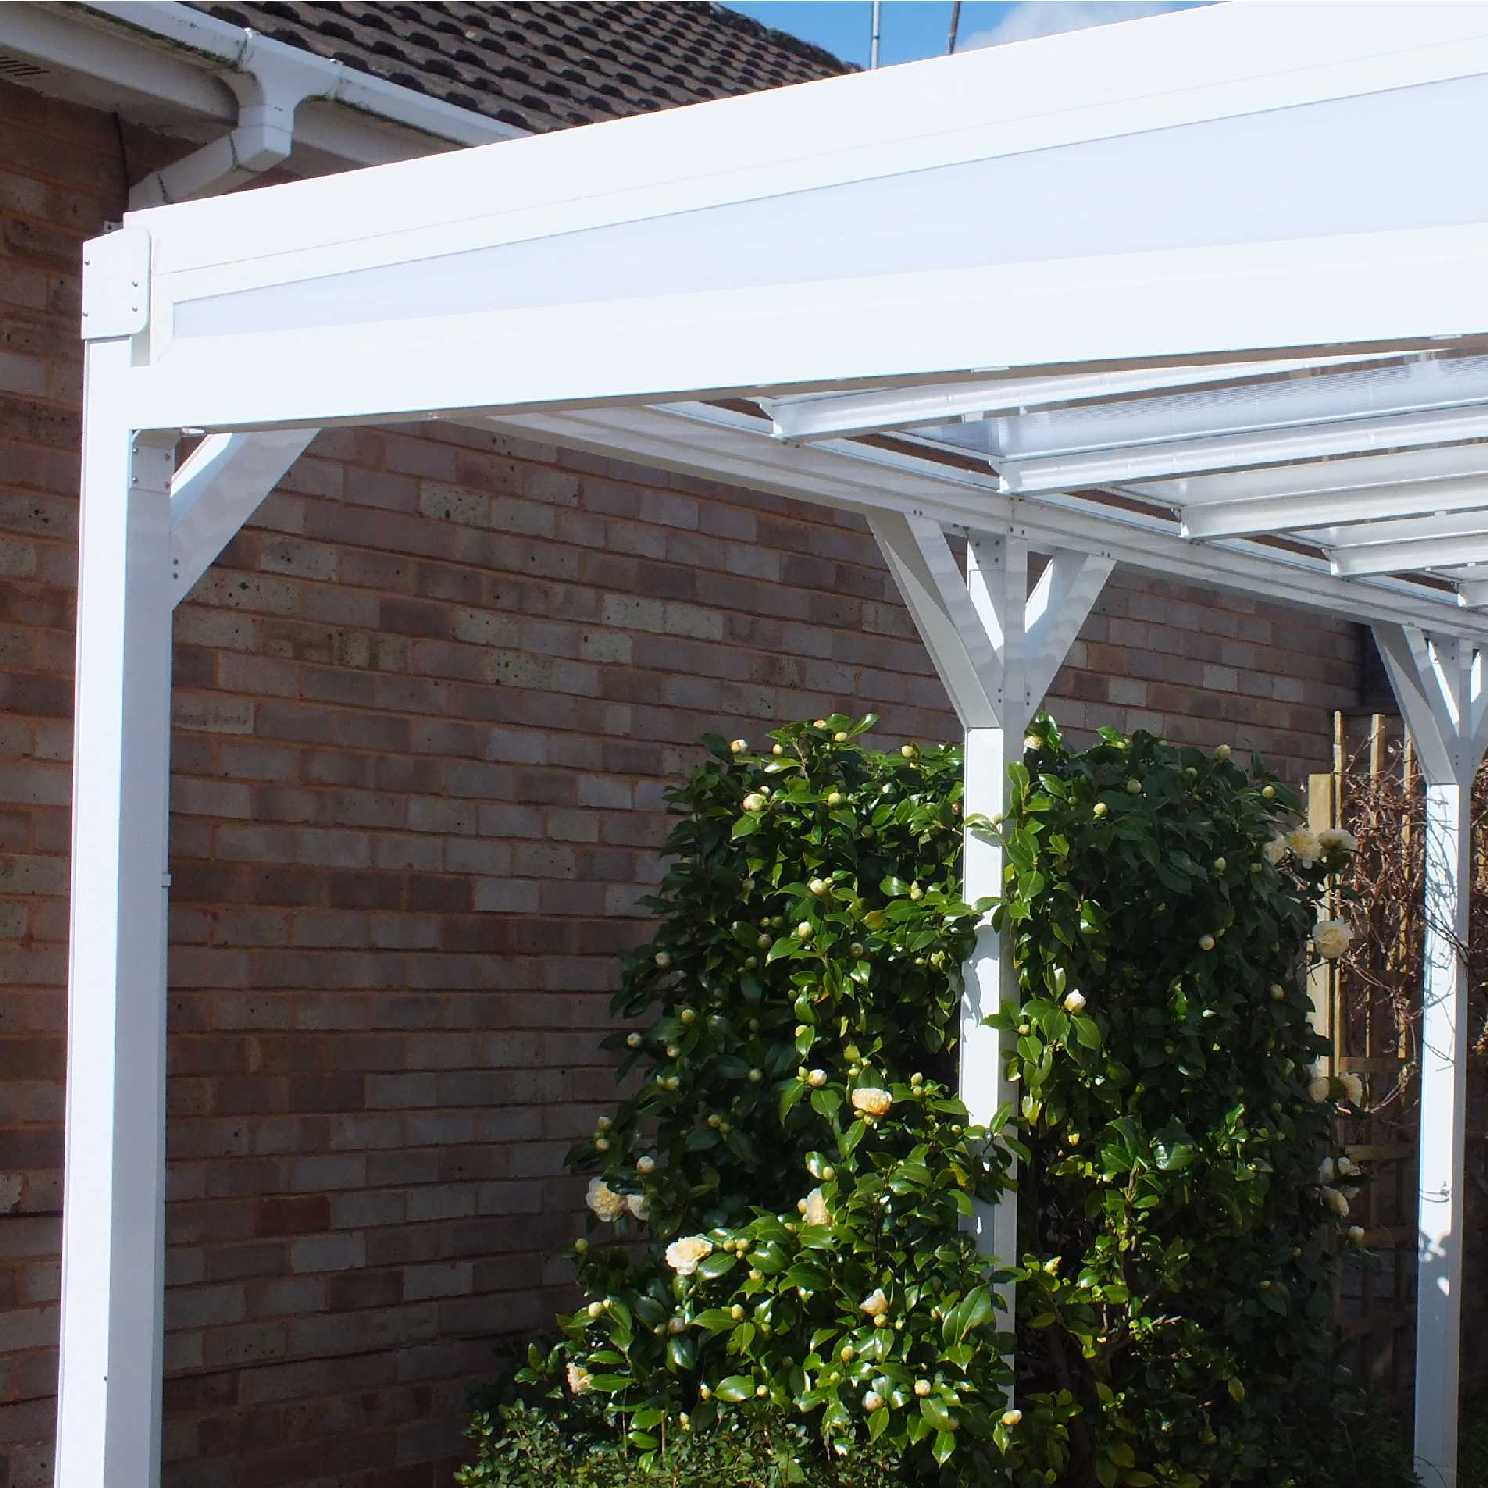 Omega Smart Lean-To Canopy with 16mm Polycarbonate Glazing - 12.0m (W) x 3.5m (P), (5) Supporting Posts from Omega Build